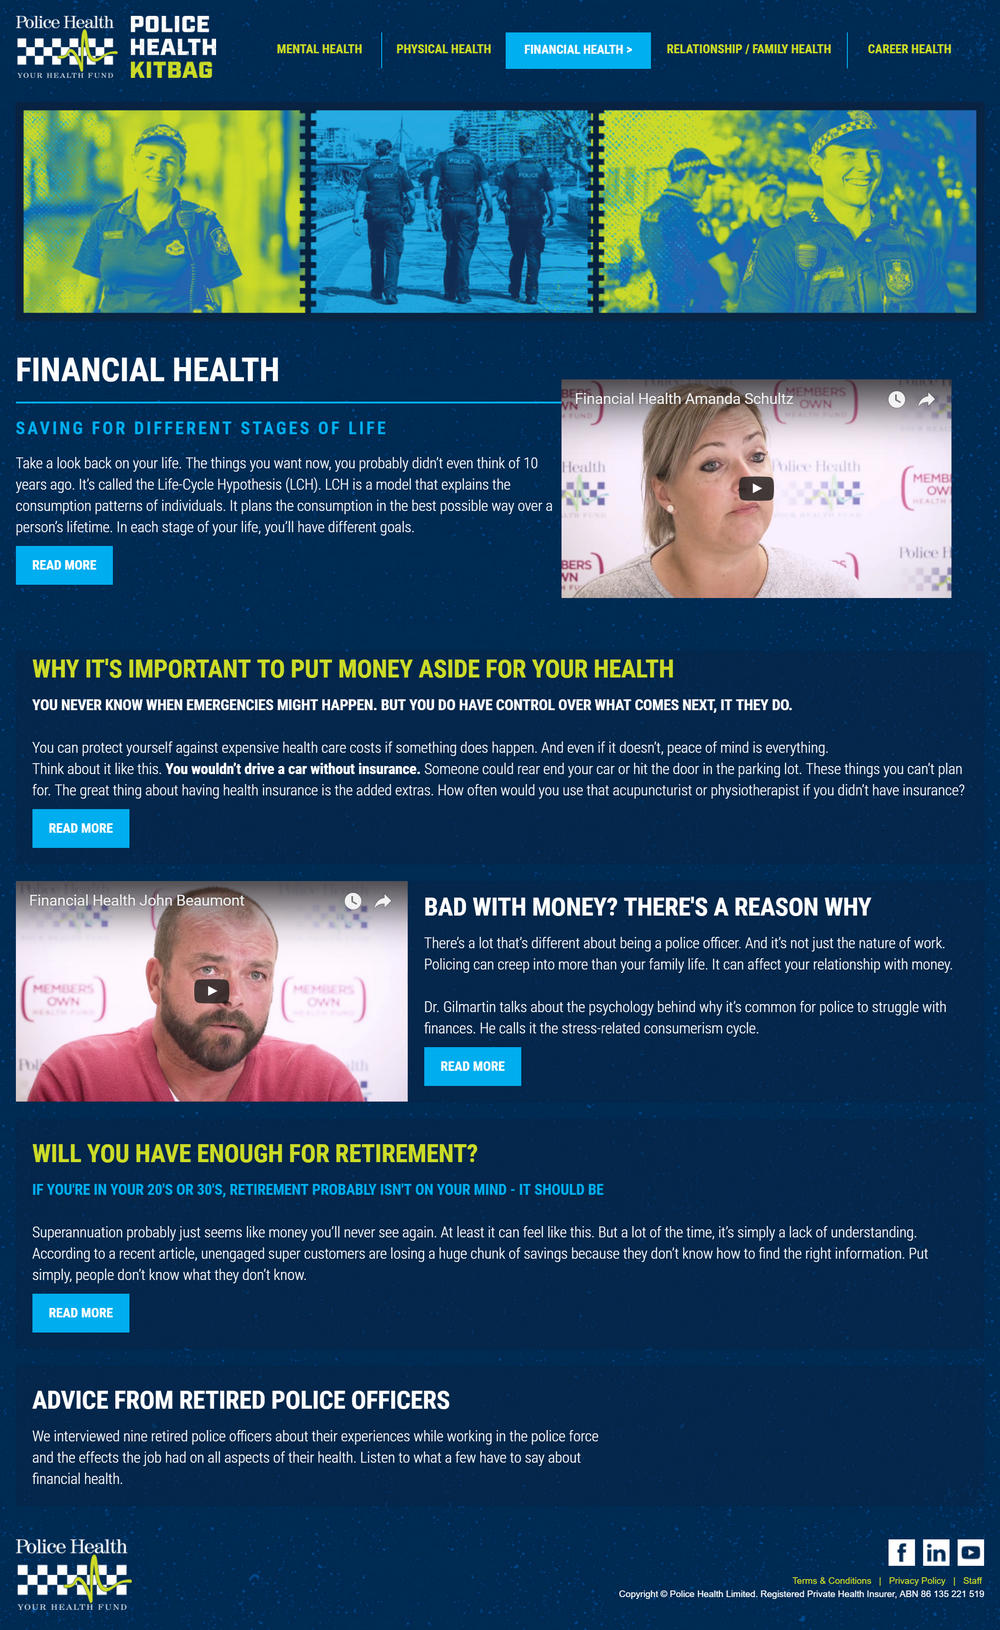 Police Health - Financial Health